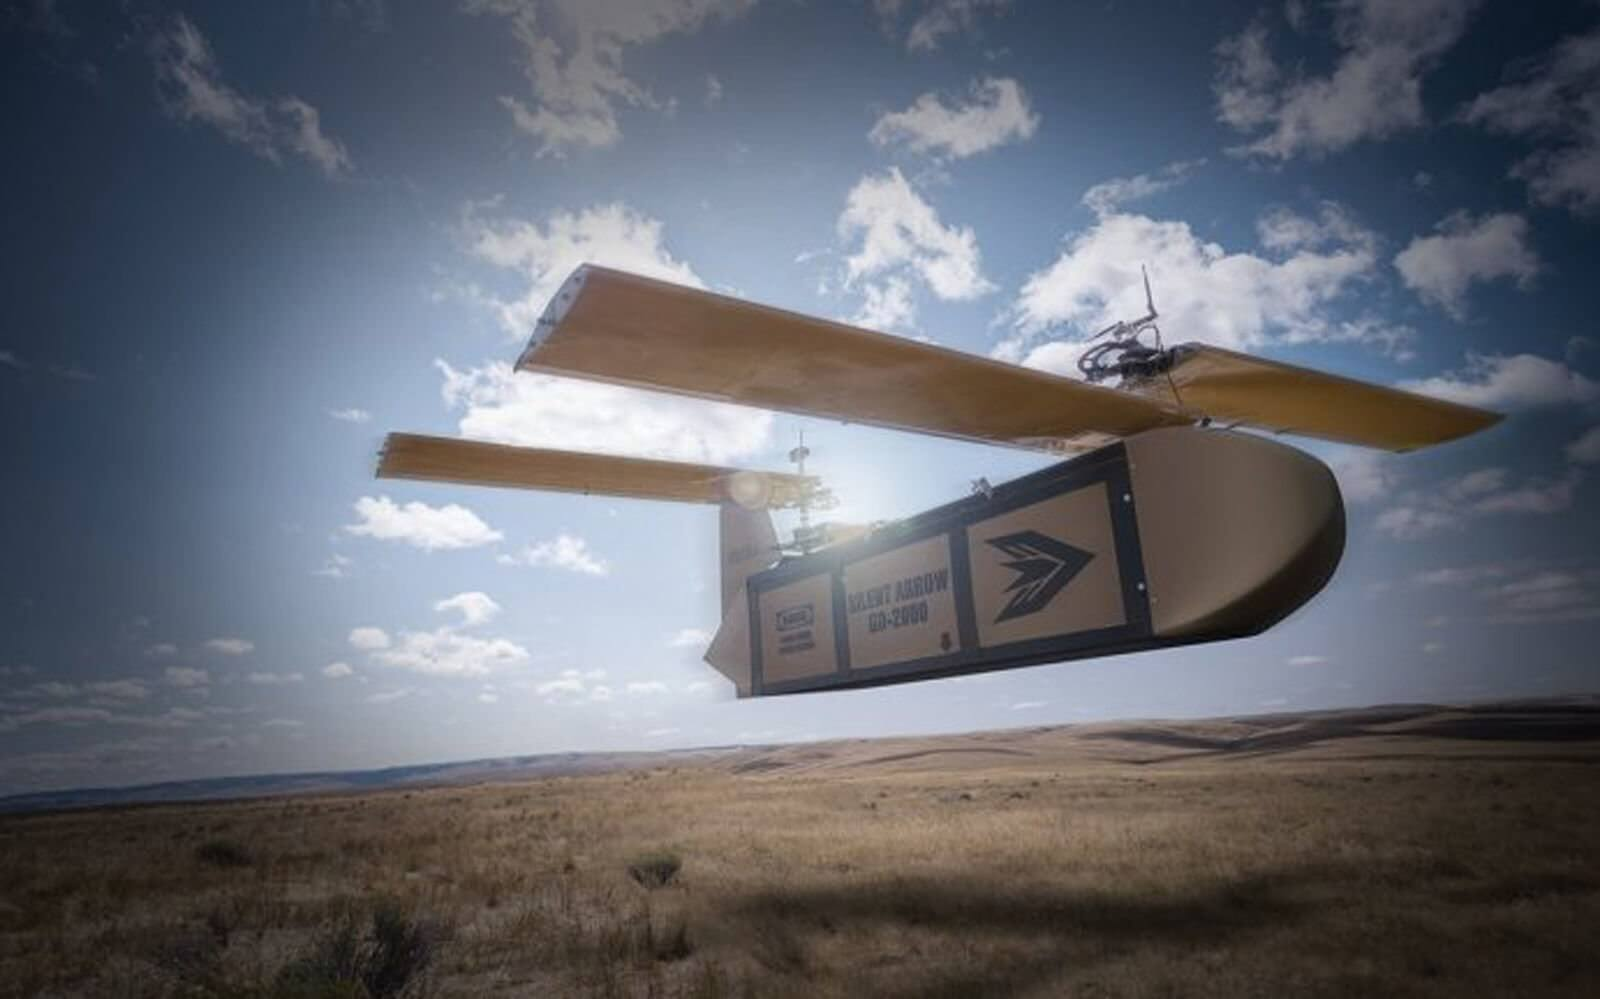 This one-ton glider delivery drone is designed for battlefield cargo drops